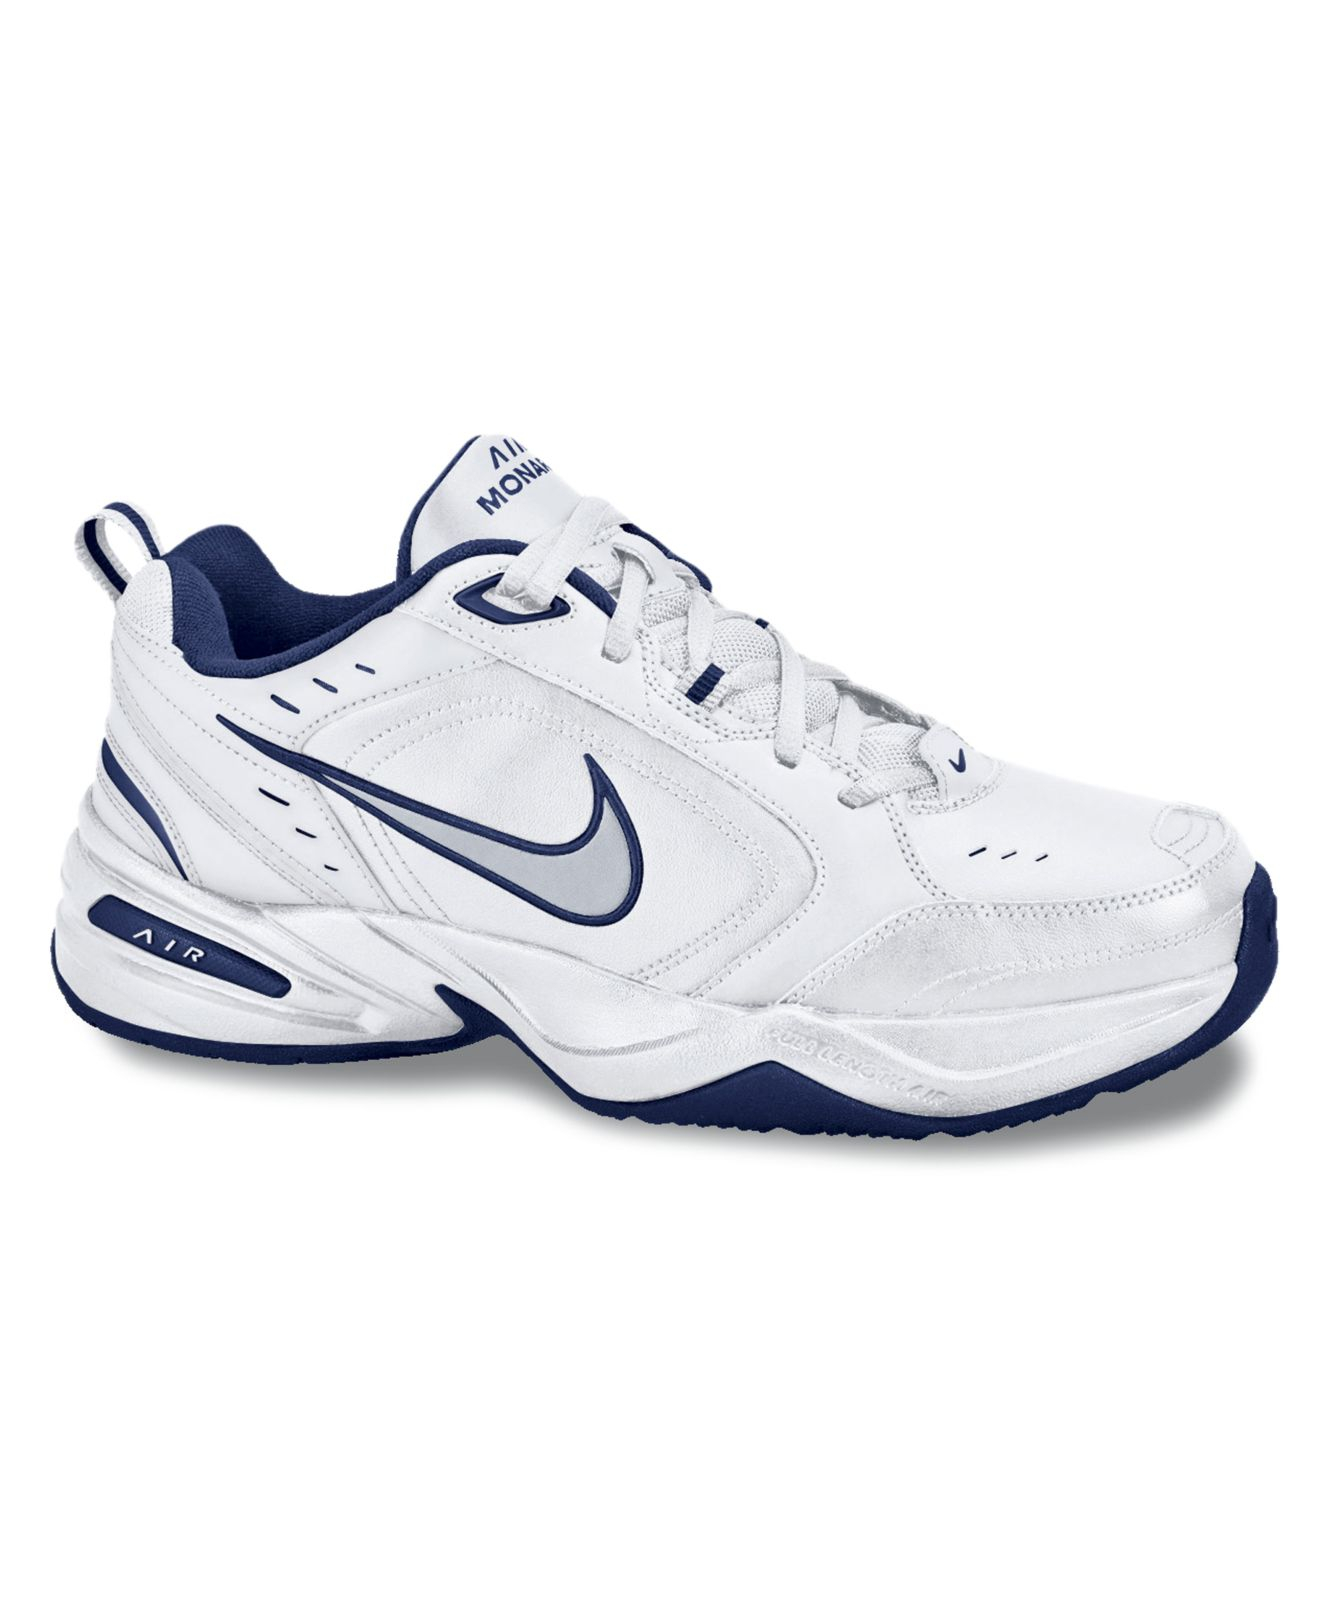 Nike Shoes Air Monarch Iv Wide Sneakers